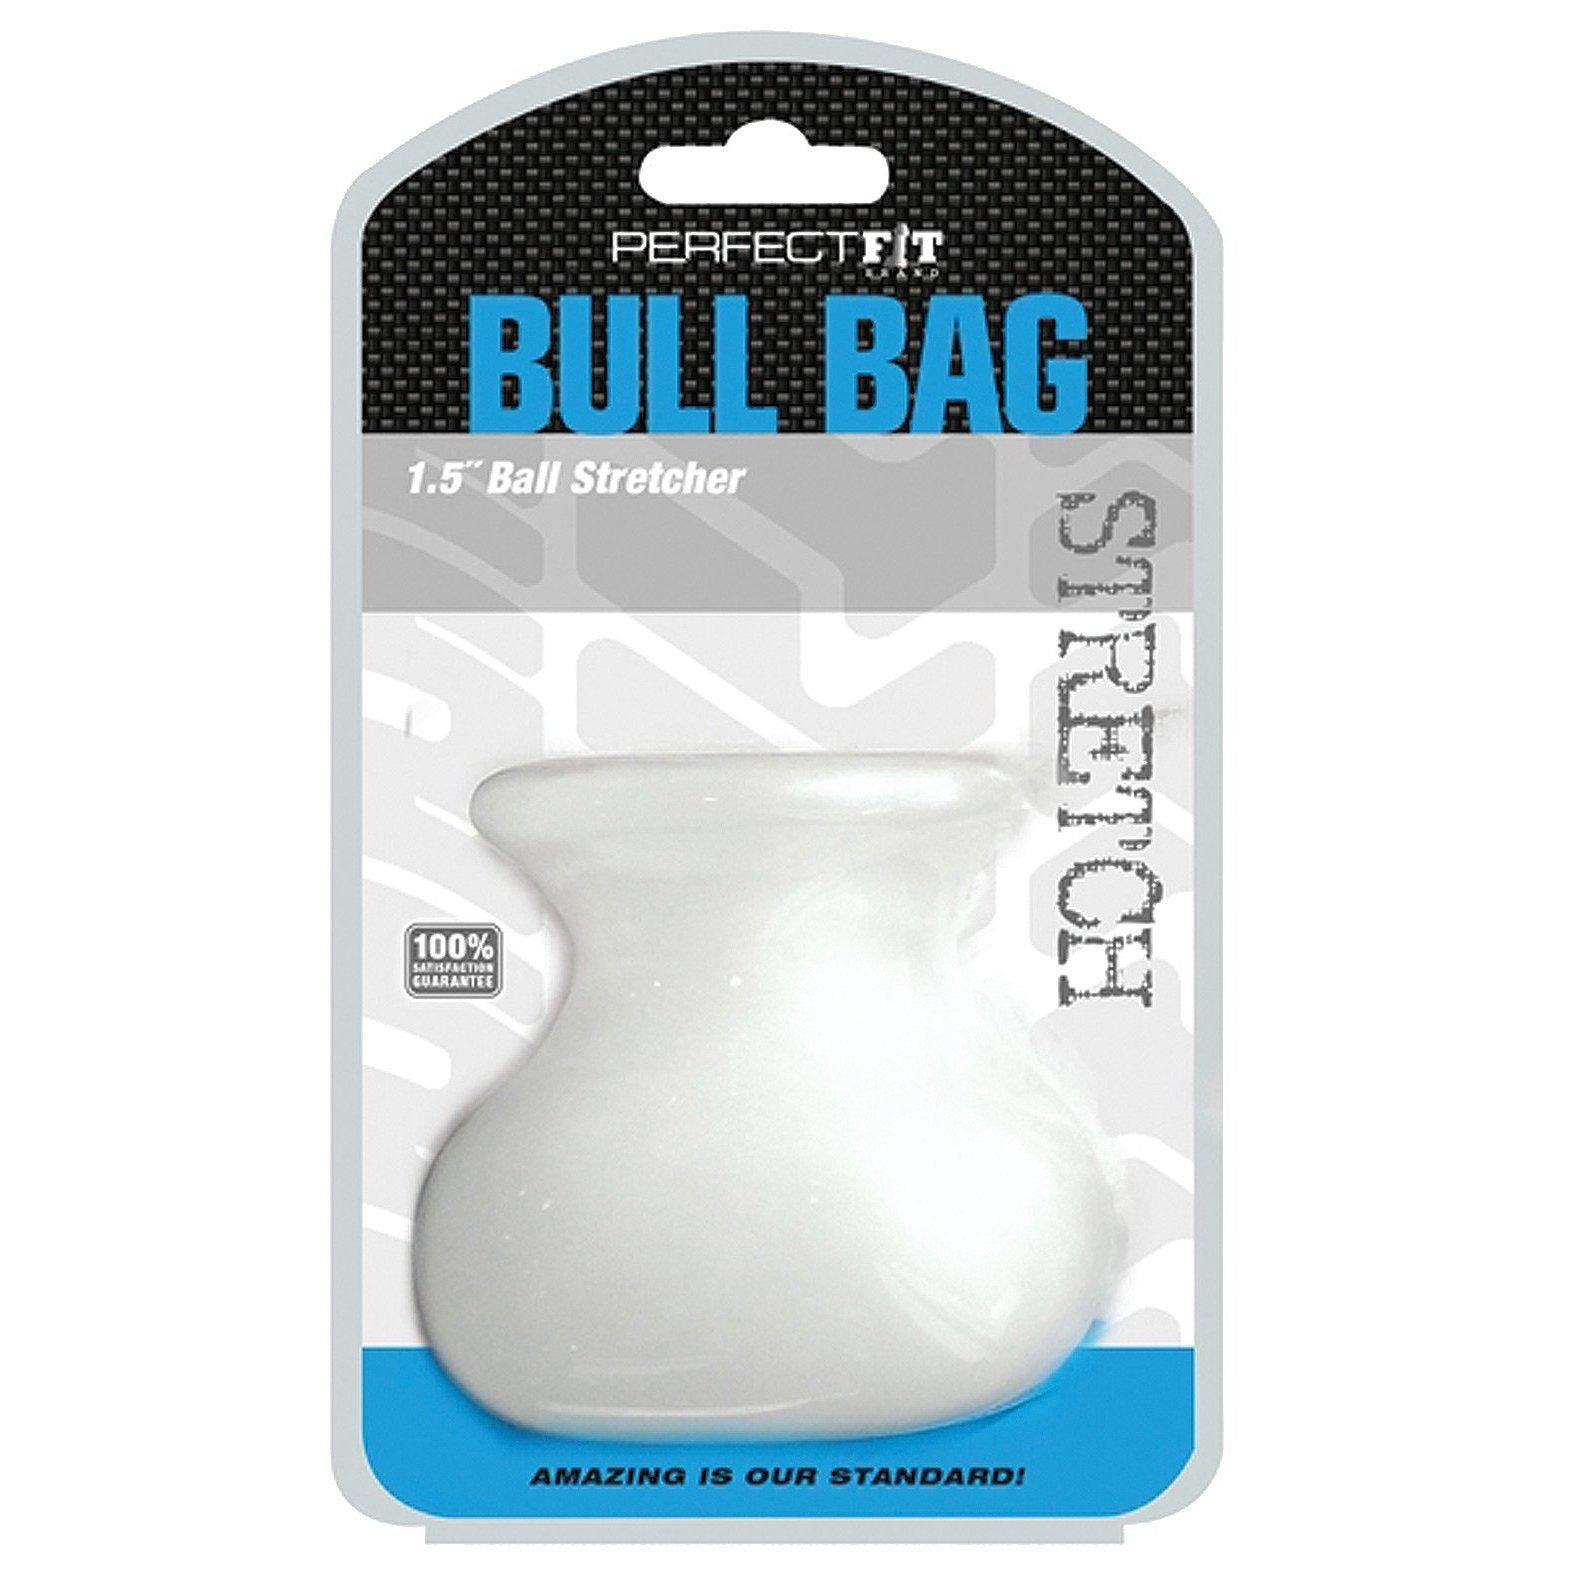 Perfect Fit Bull Bag Ball Stretcher - Gay Men's Sex Toys - Adam's Toy Box